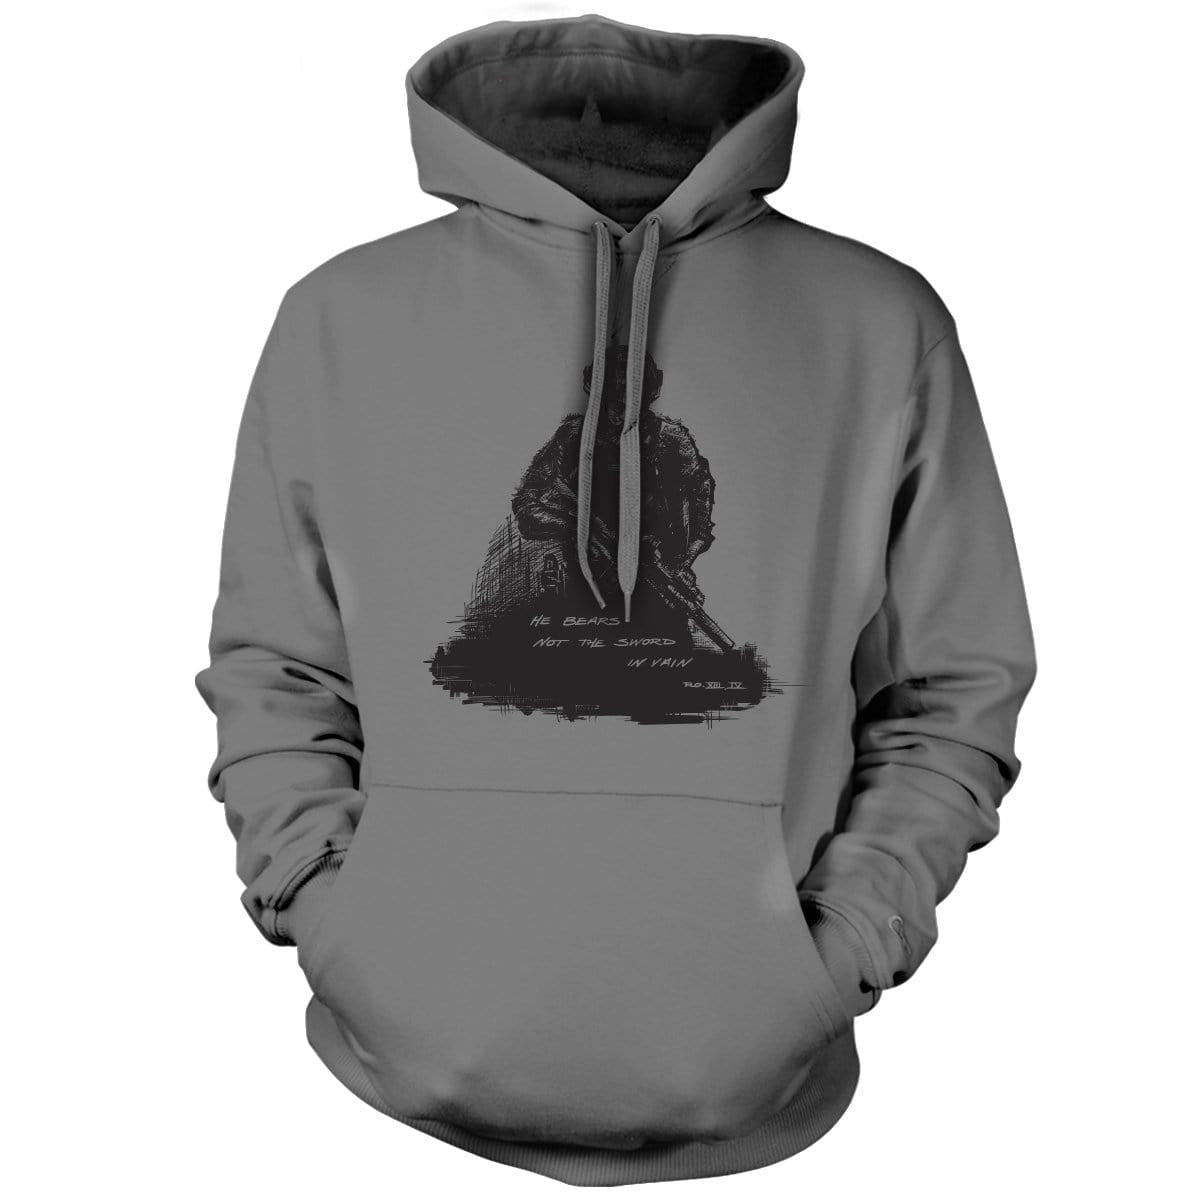 Romans 13:4 Hoodie - Grey - Hoodies - Pipe Hitters Union